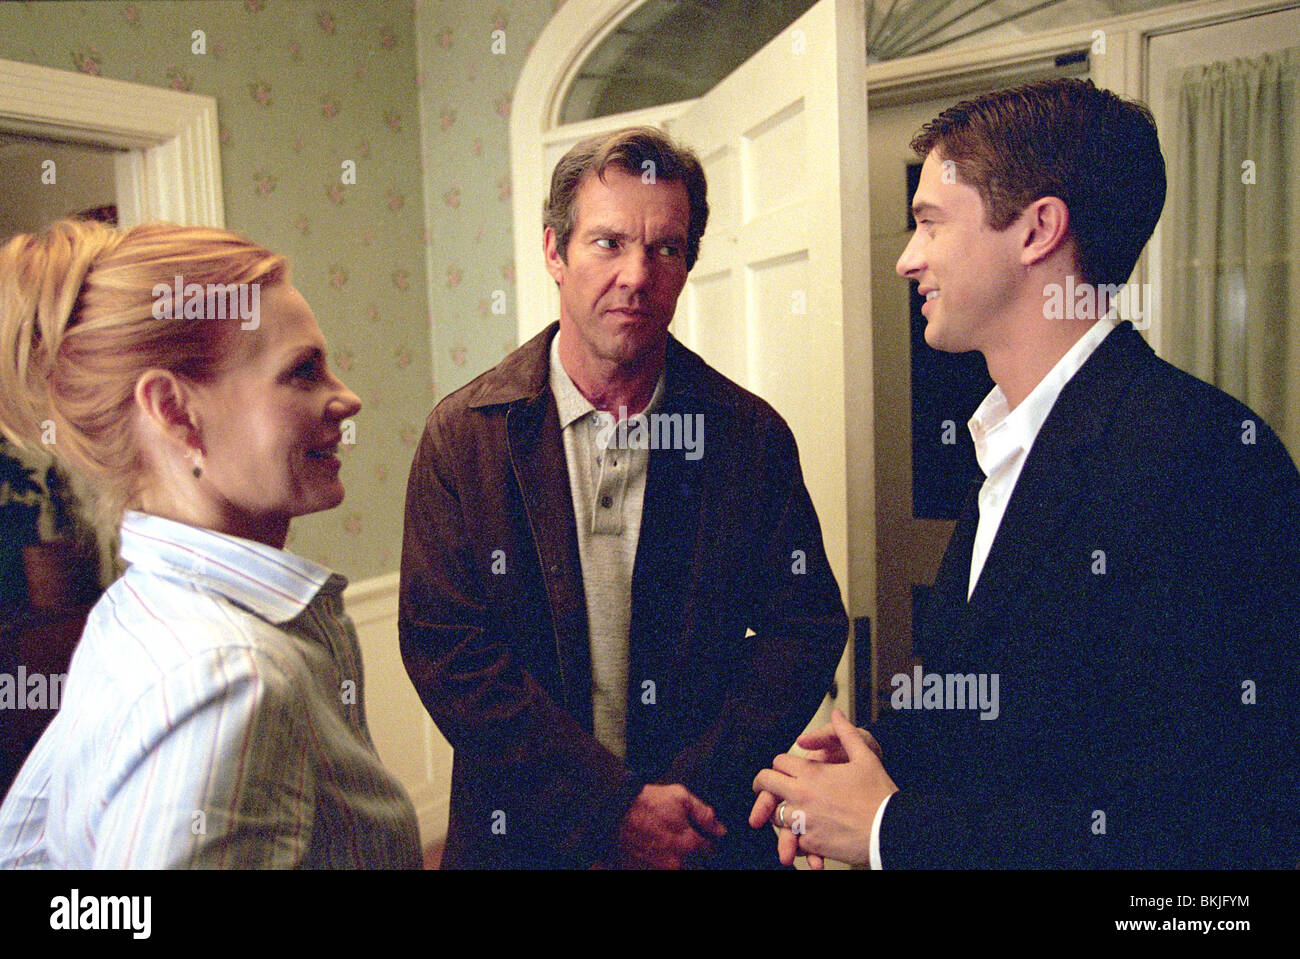 IN BUONA compagnia (2004) MARG HELGENBERGER, Dennis Quaid, Topher Grace INGO 001 - AR Immagini Stock